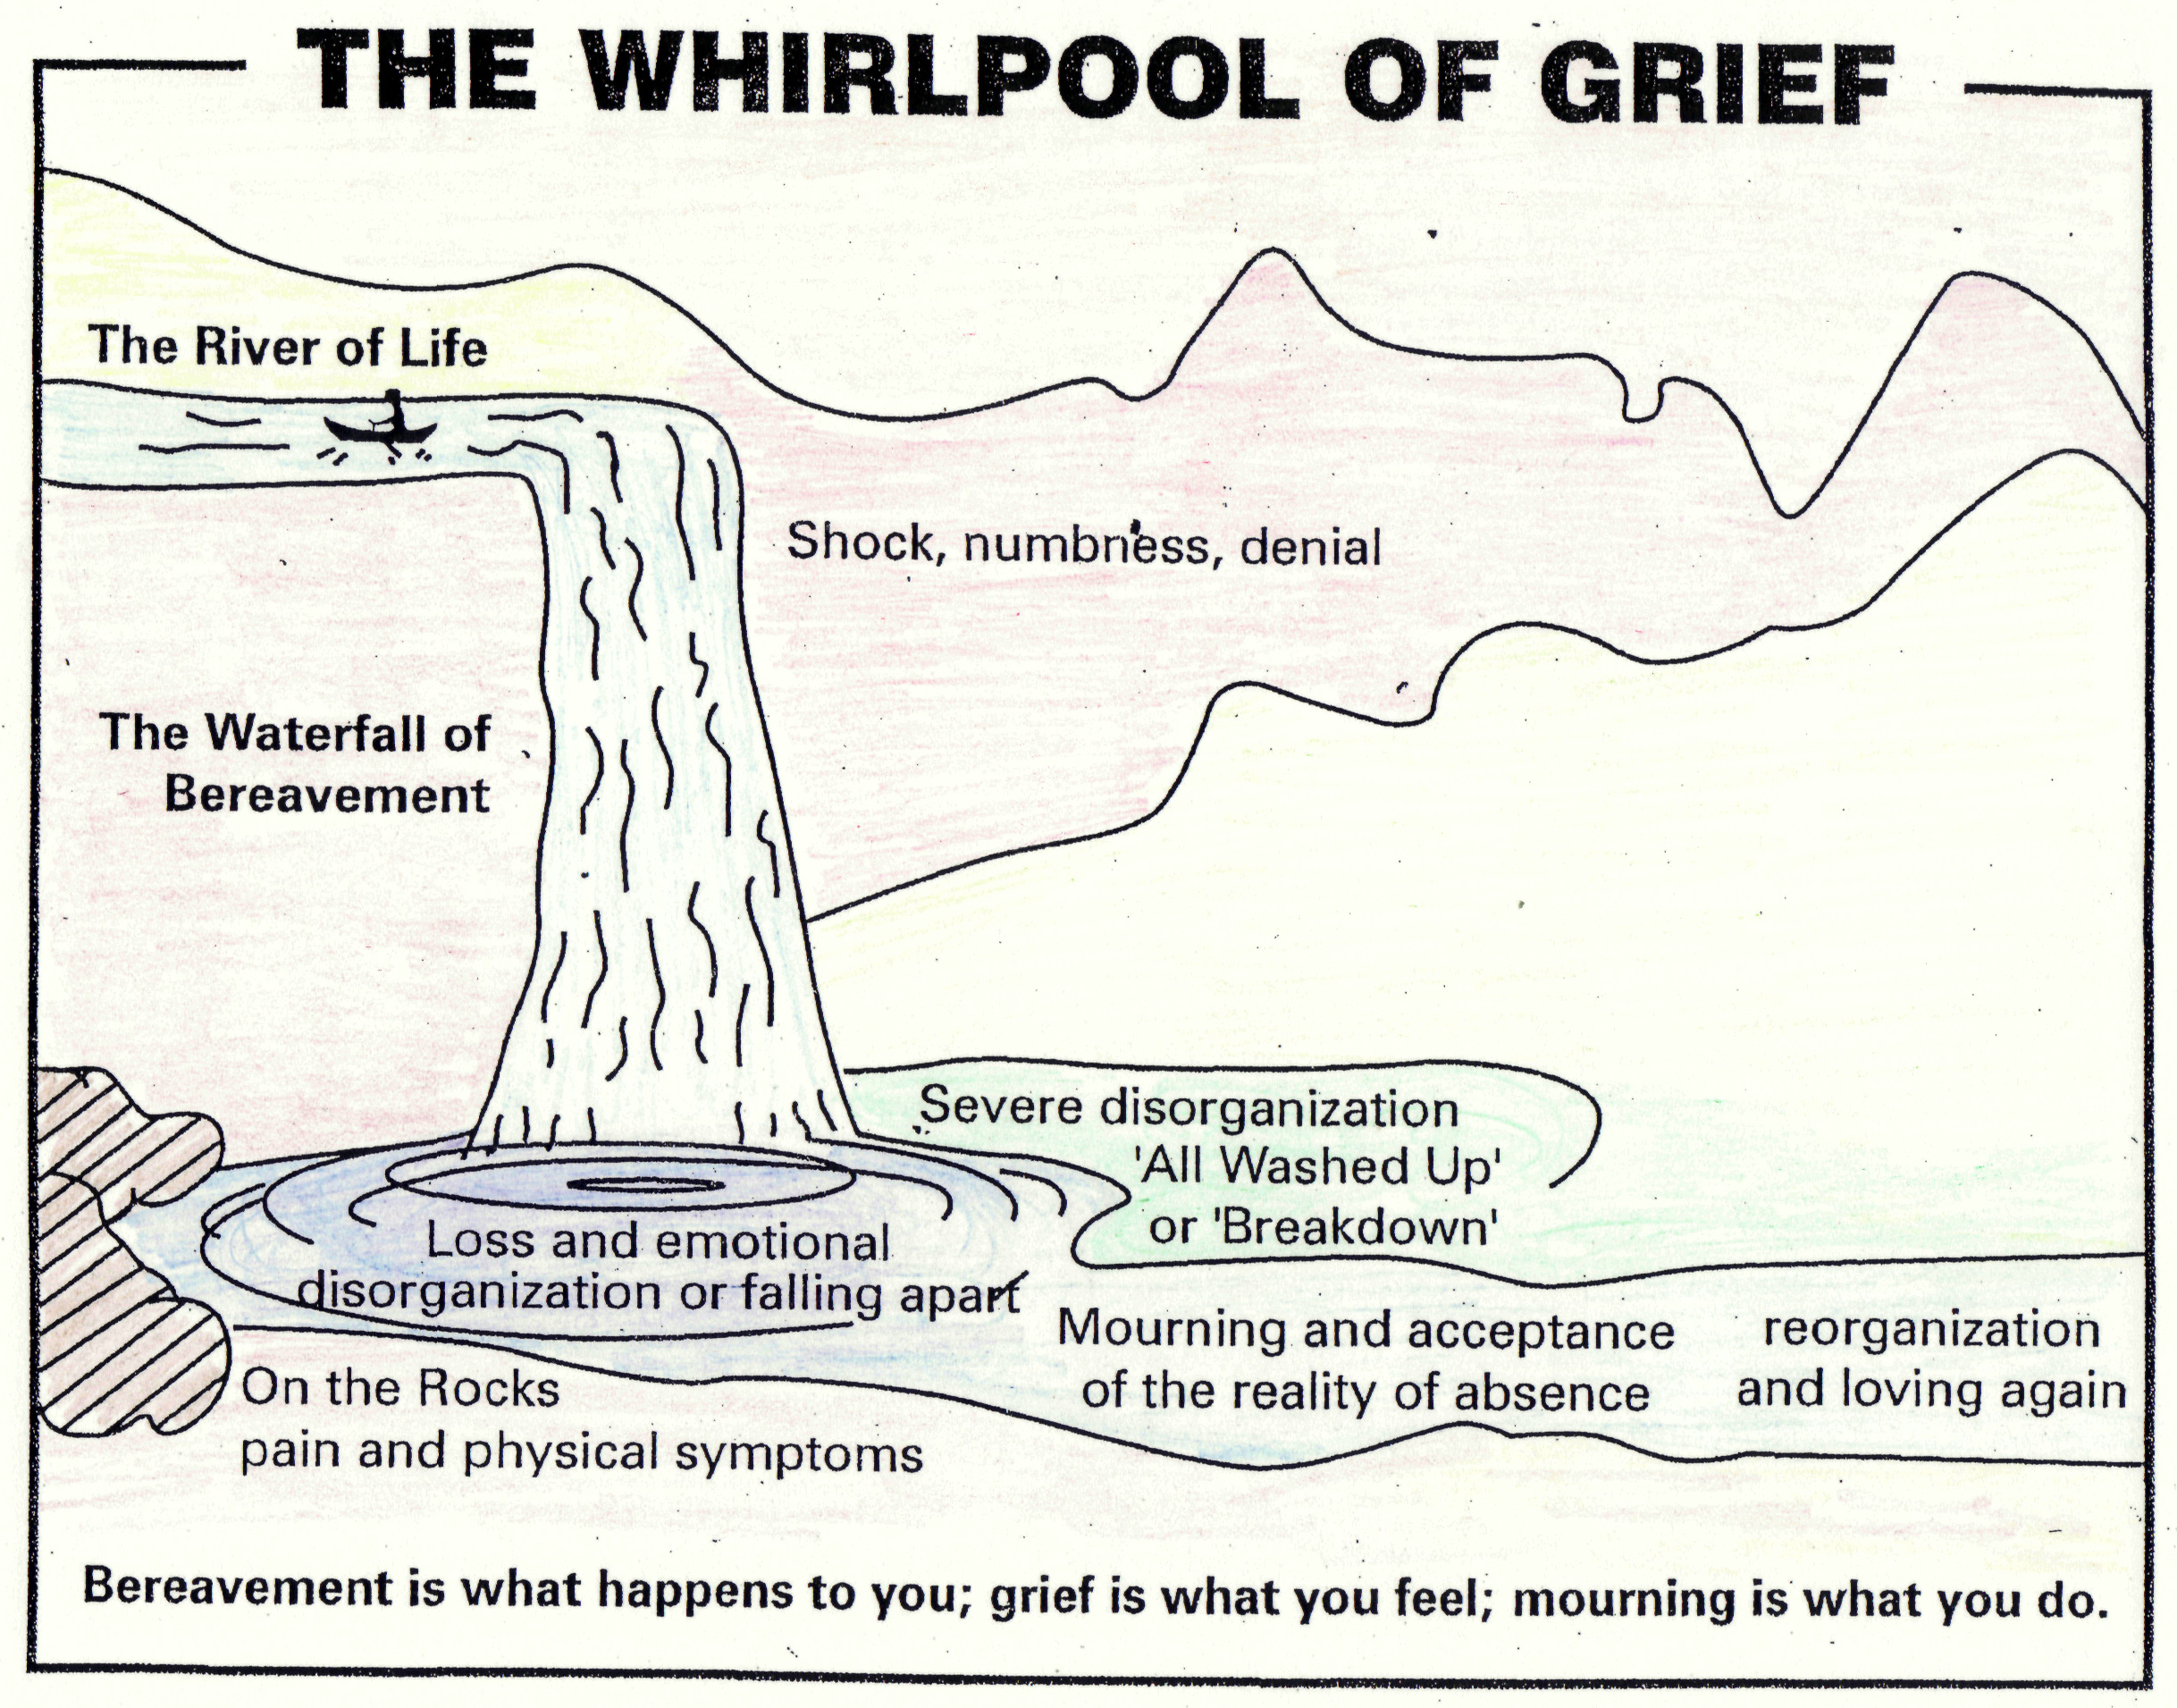 grief and the grieving process Grief is sometimes described as a process of 5 stages: denial, anger, bargaining, depression, and acceptance all of these reactions to loss are normal however, not everyone who is grieving experiences all of these reactions.